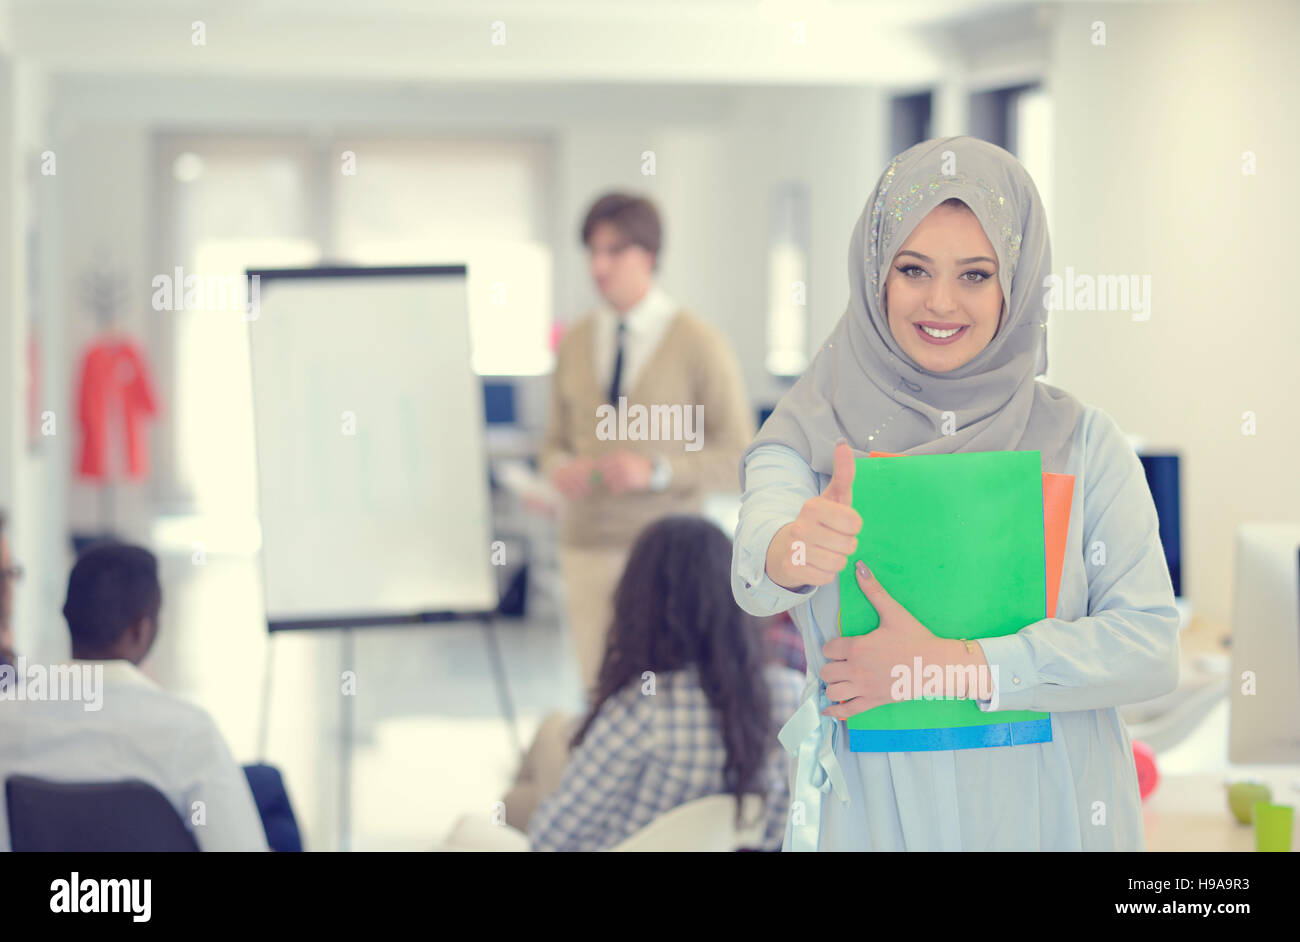 Arabic business woman working in team with her colleagues at startup office - Stock Image